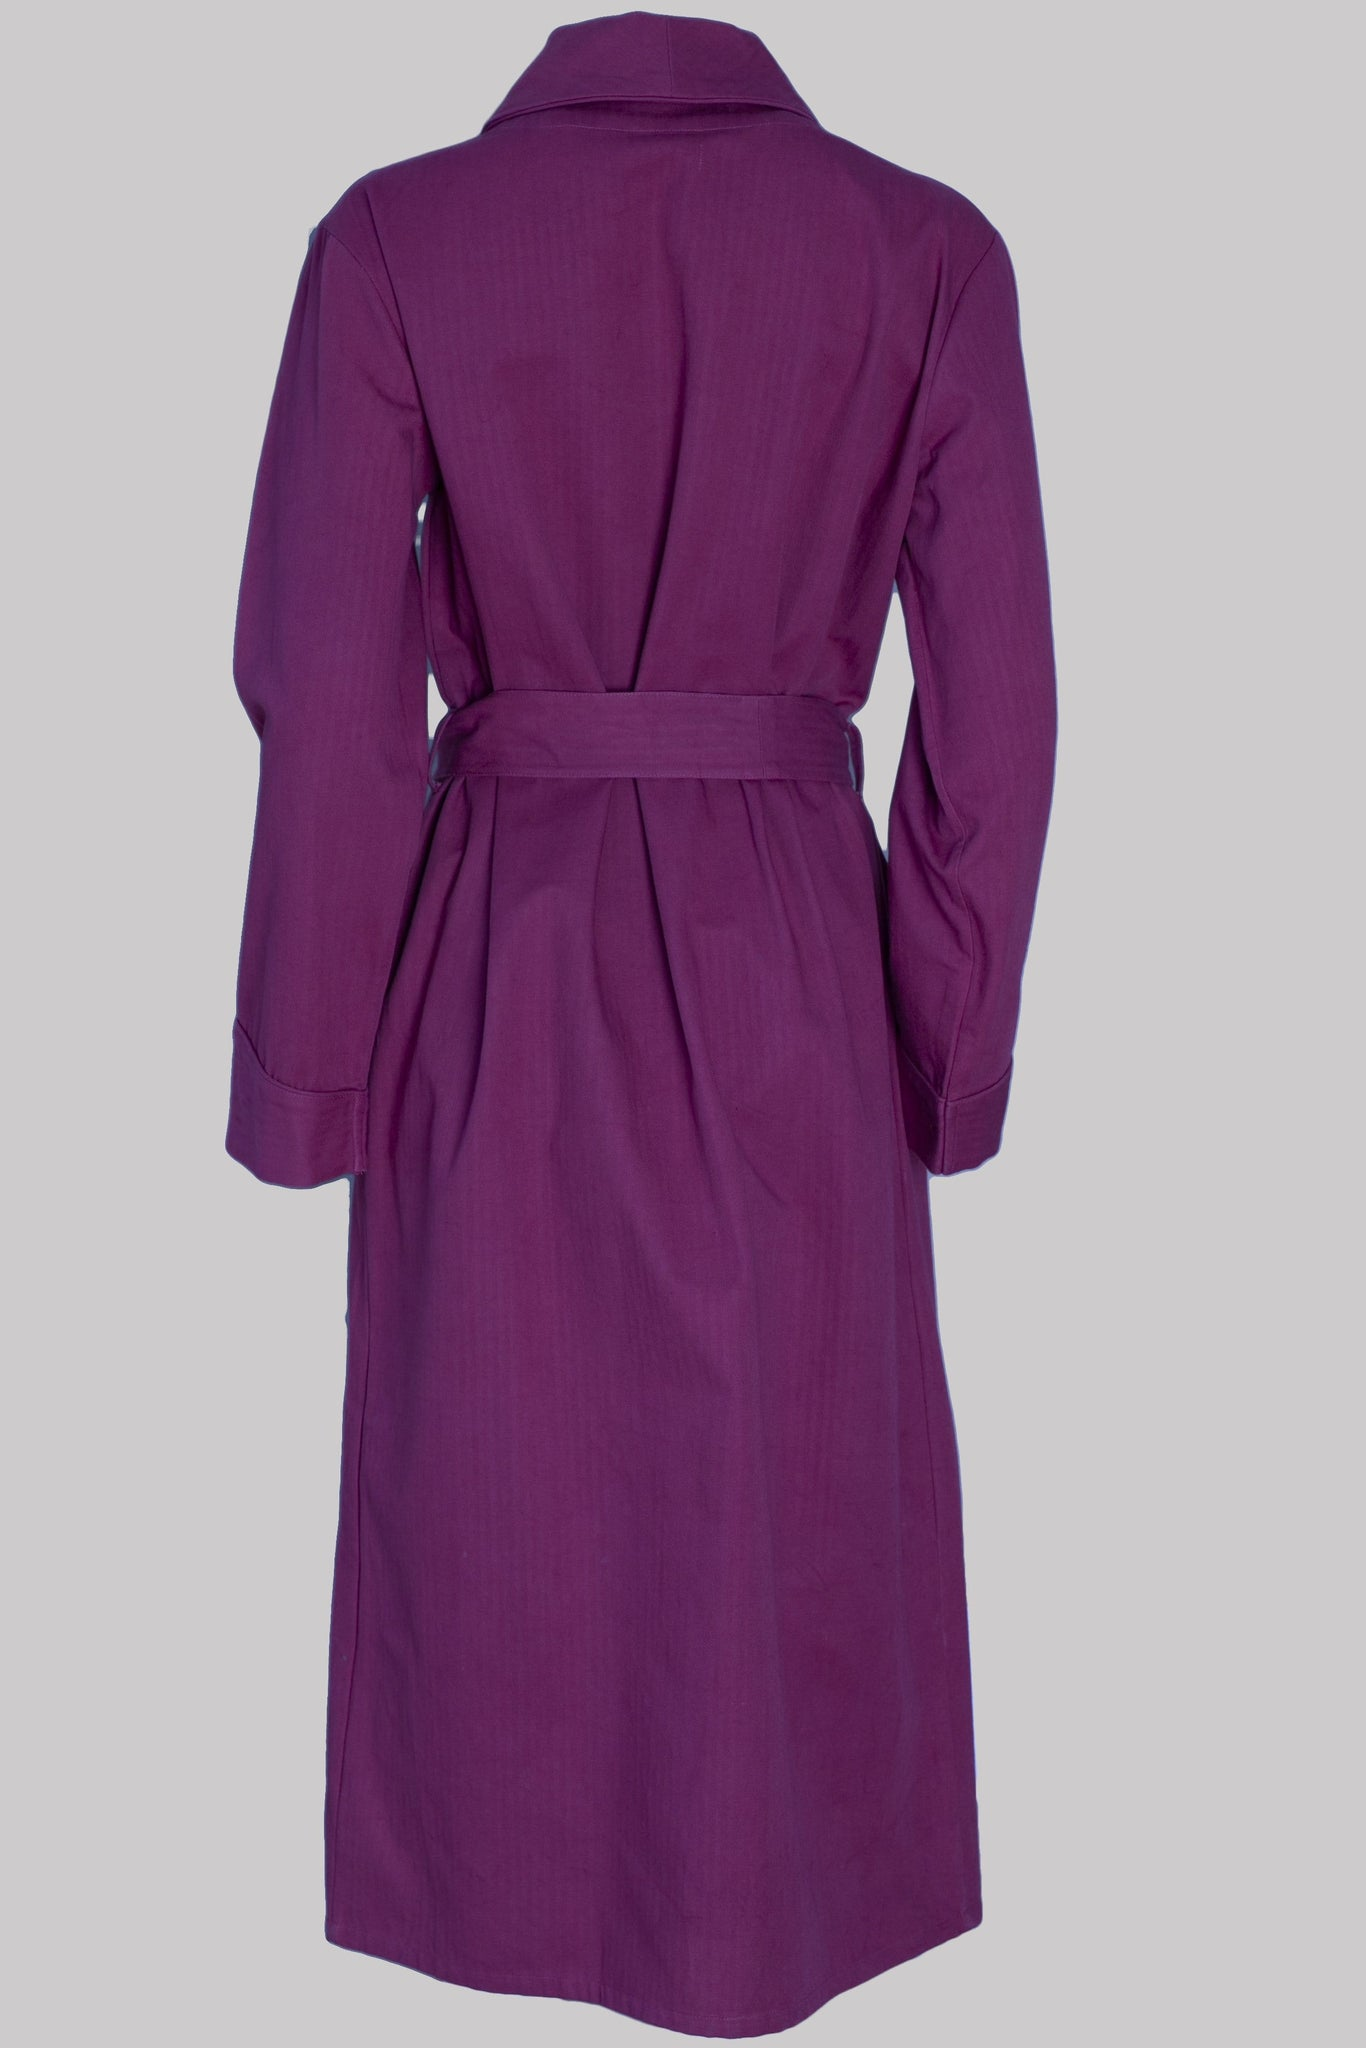 8631 DRESSING-GOWN Cotton BURGUNDY